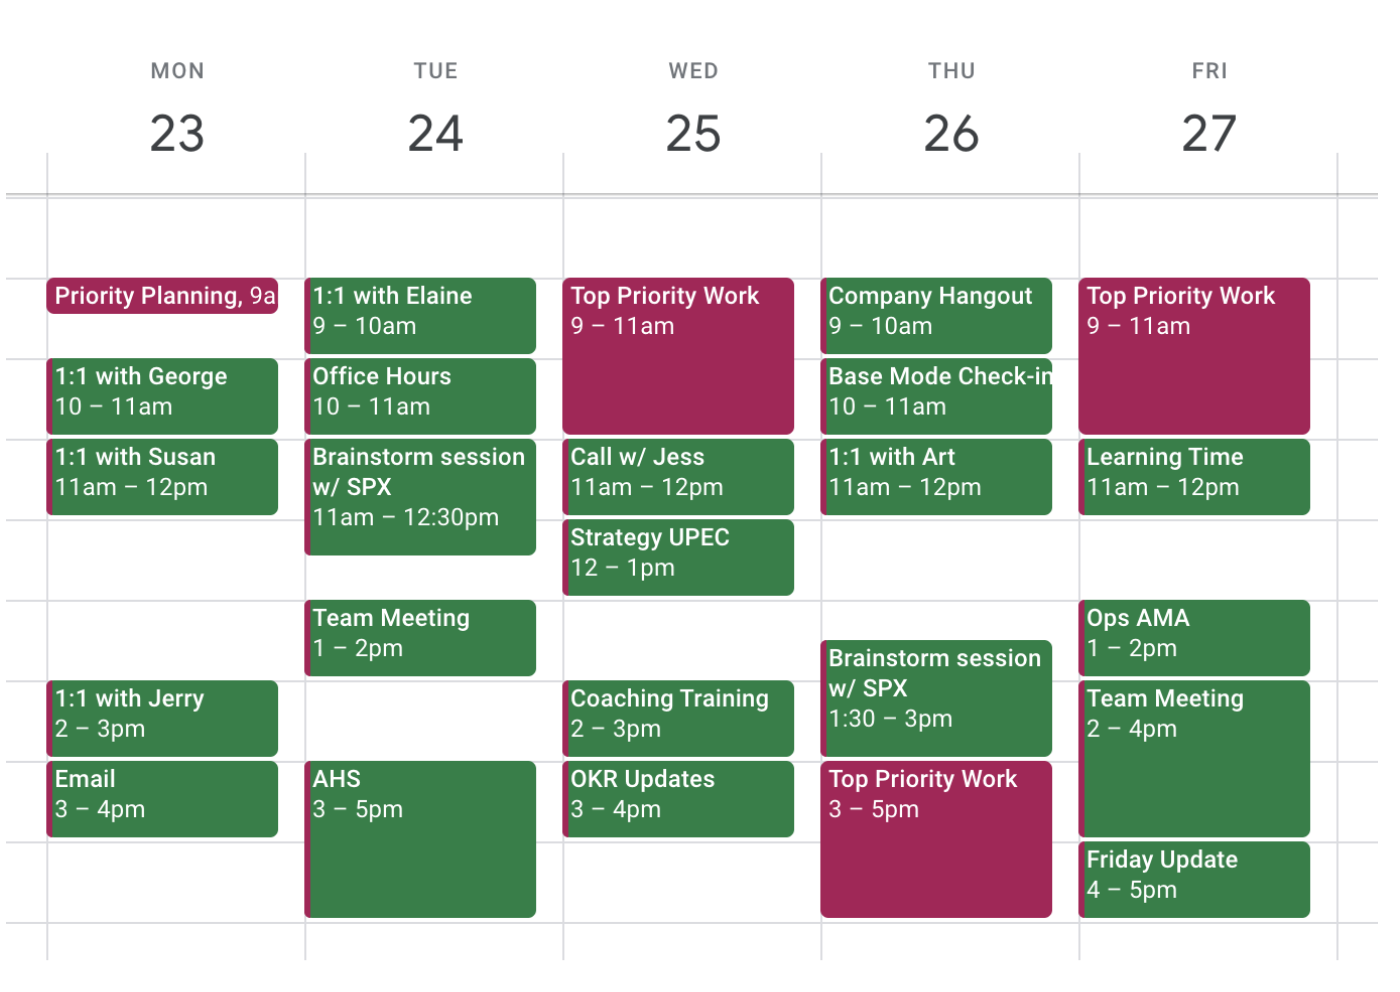 A screenshot of a time-blocked Google Calendar